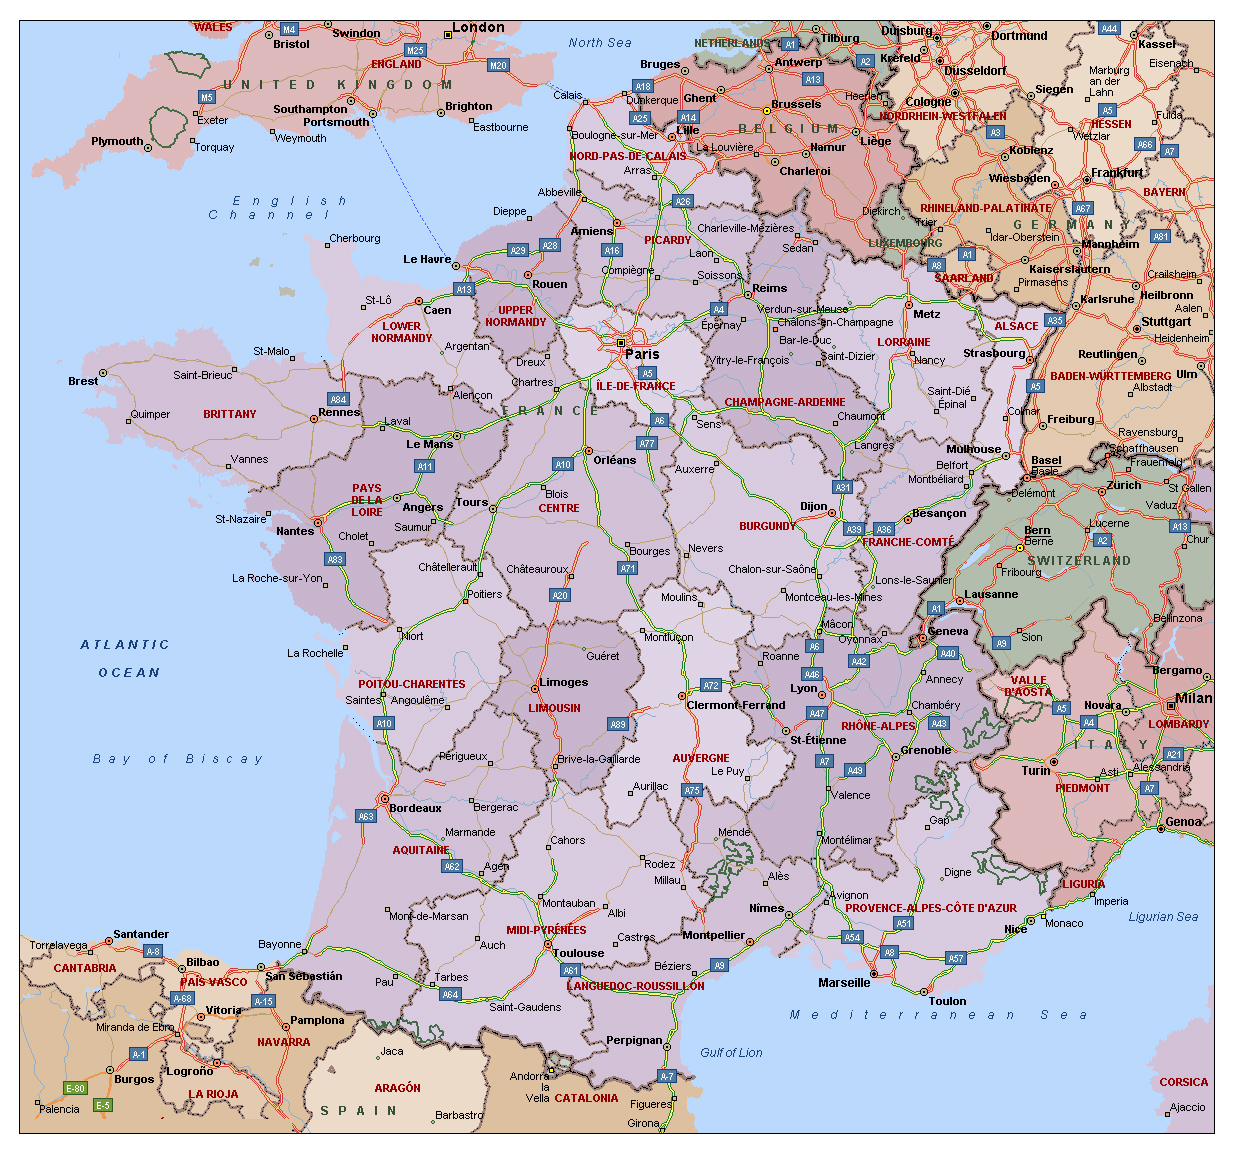 Cities Of France Map.Political And Administrative Map Of France With Highways And Major